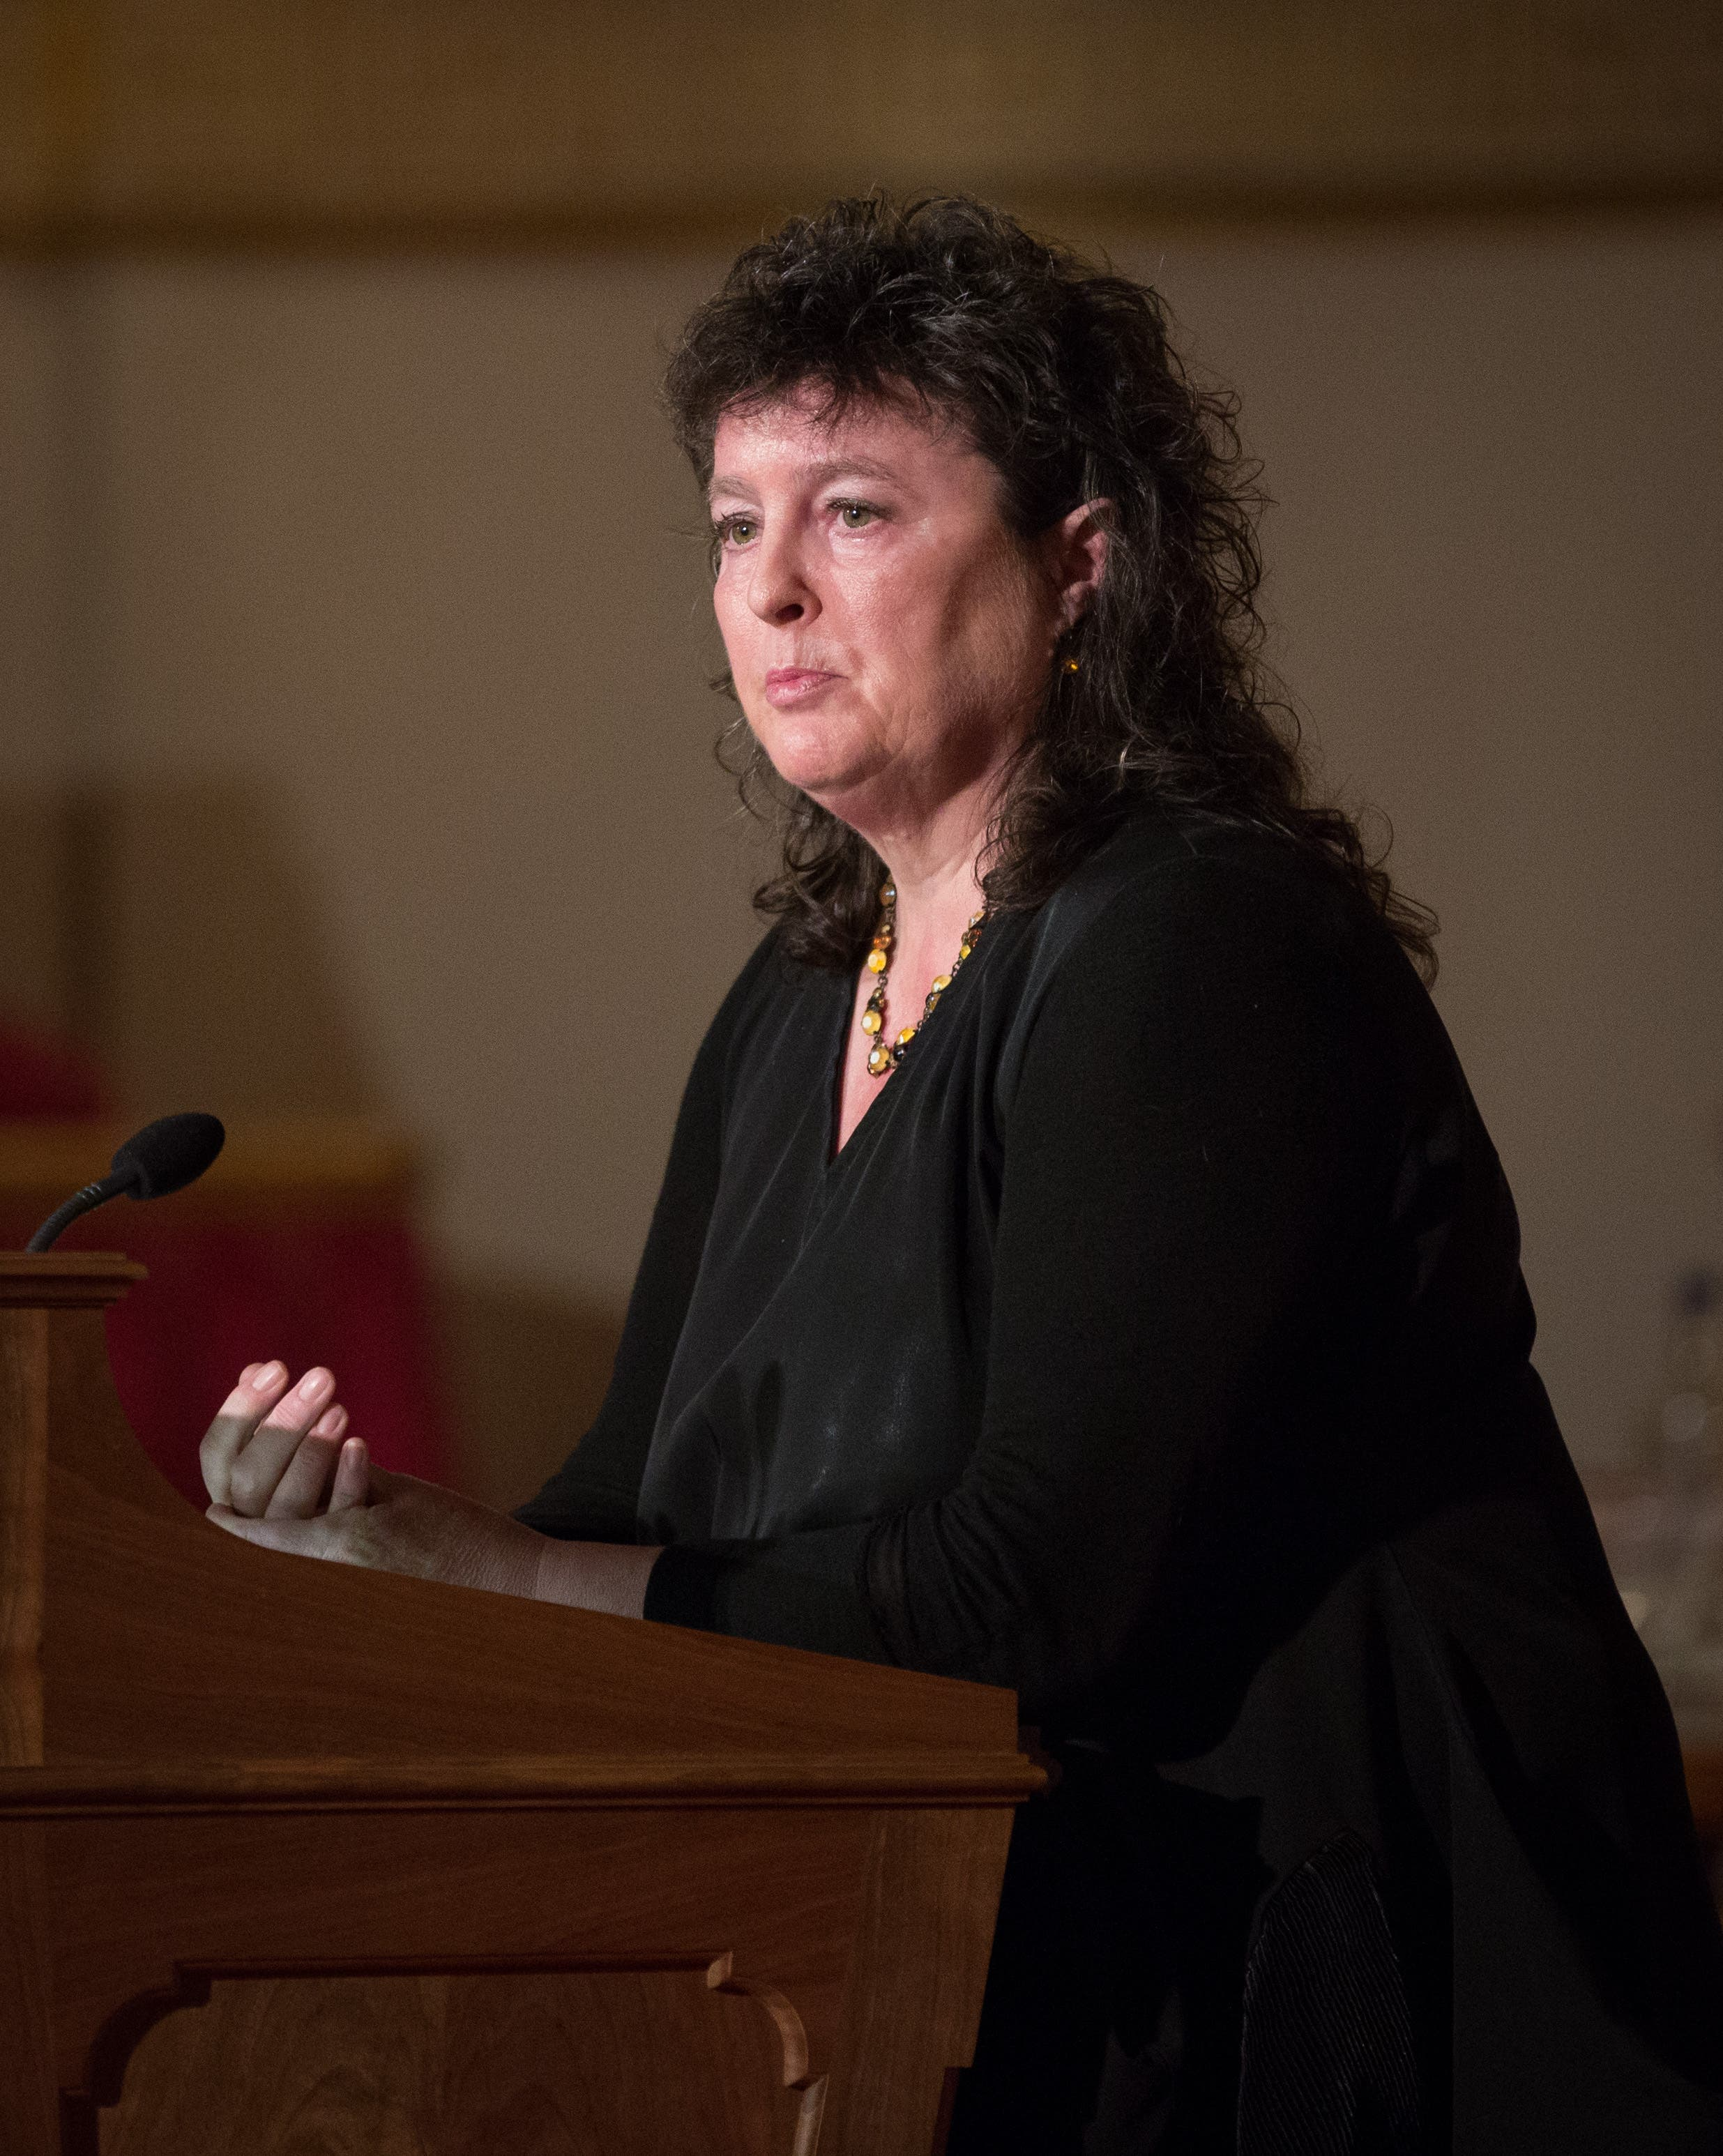 The current poet laureate Carol Ann Duffy's term ends in May 2019. (AFP)